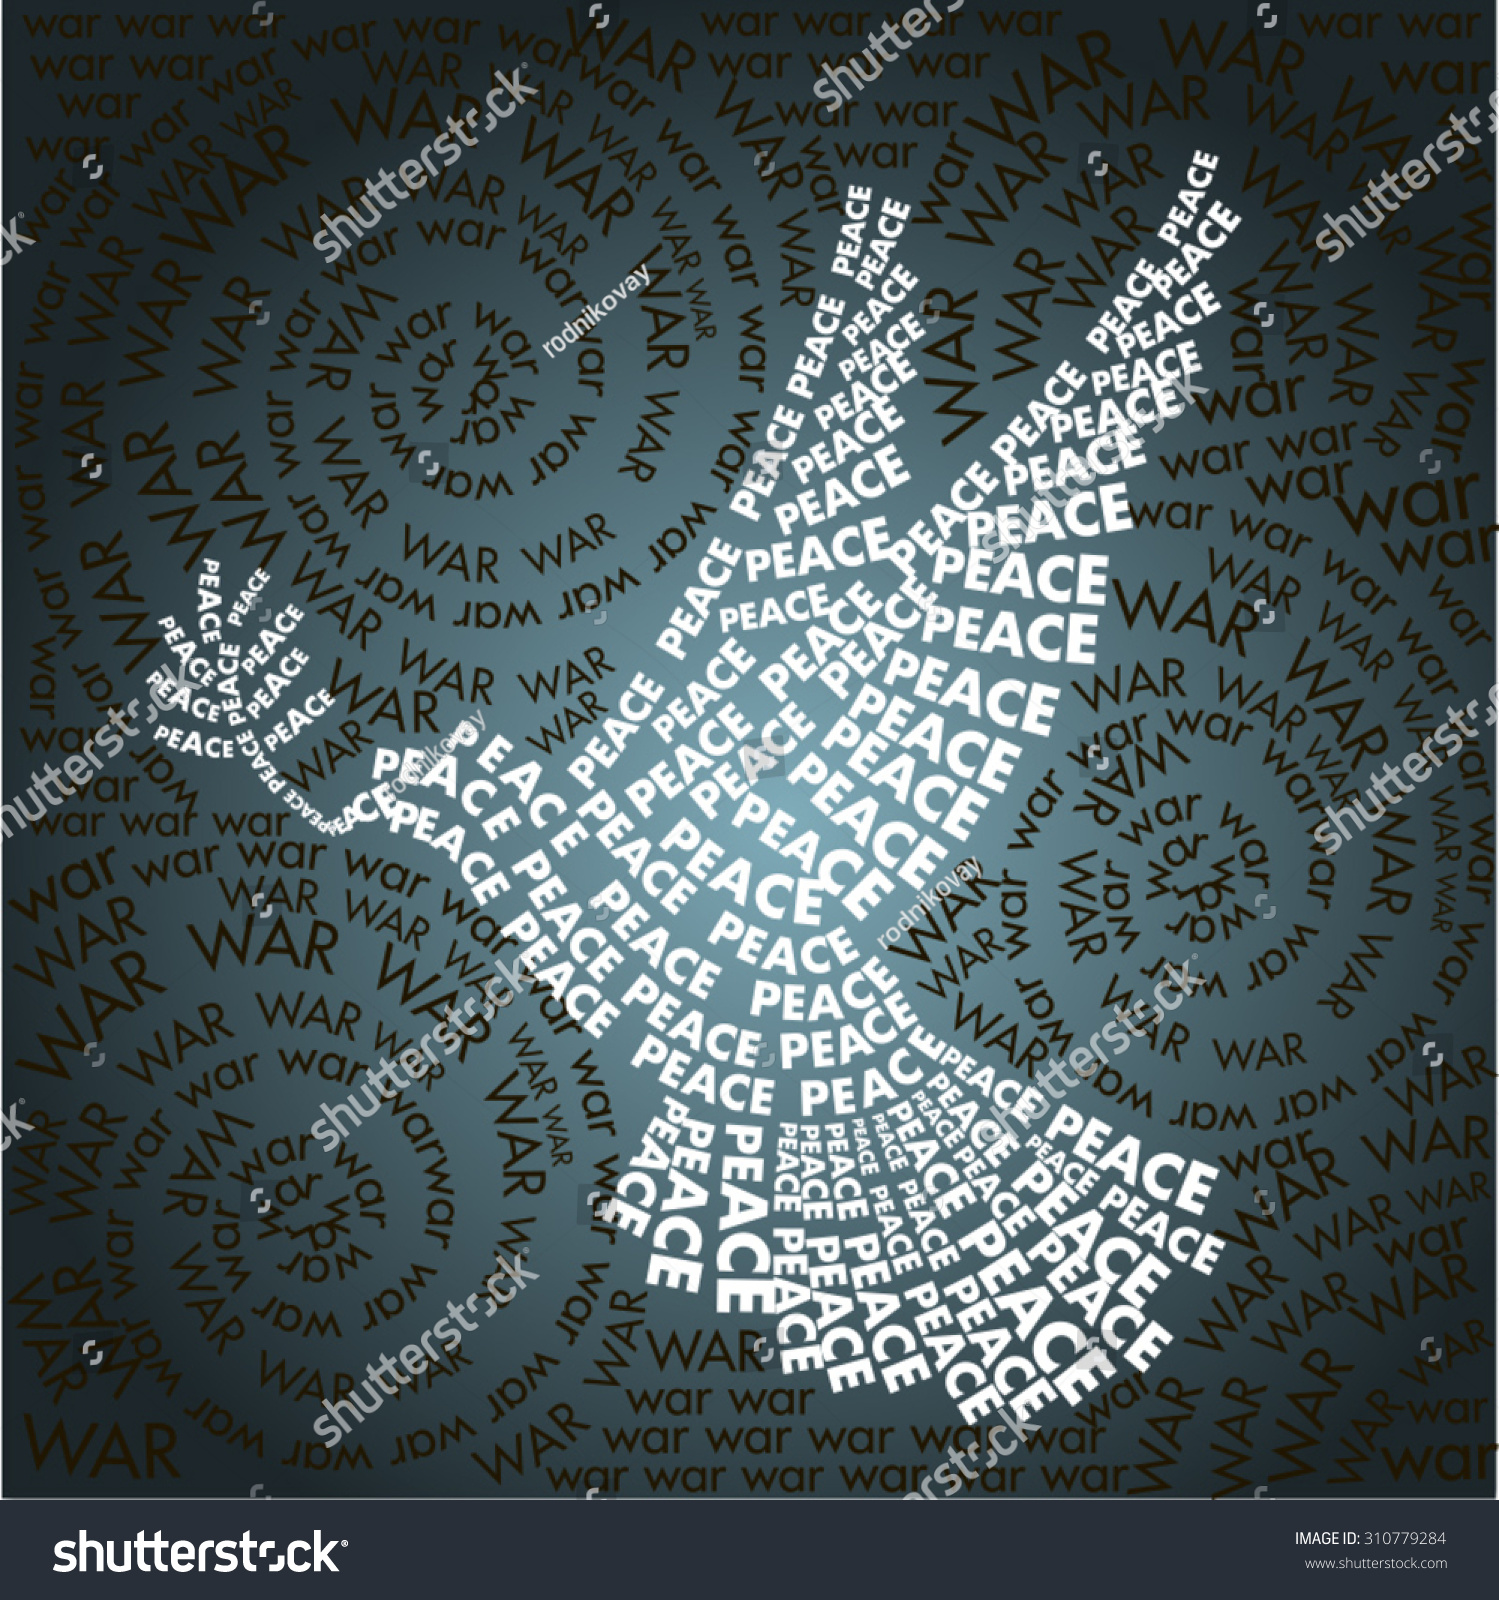 Wallpaper Of Peace: Dove Peace Words Background Word War Stock Vector